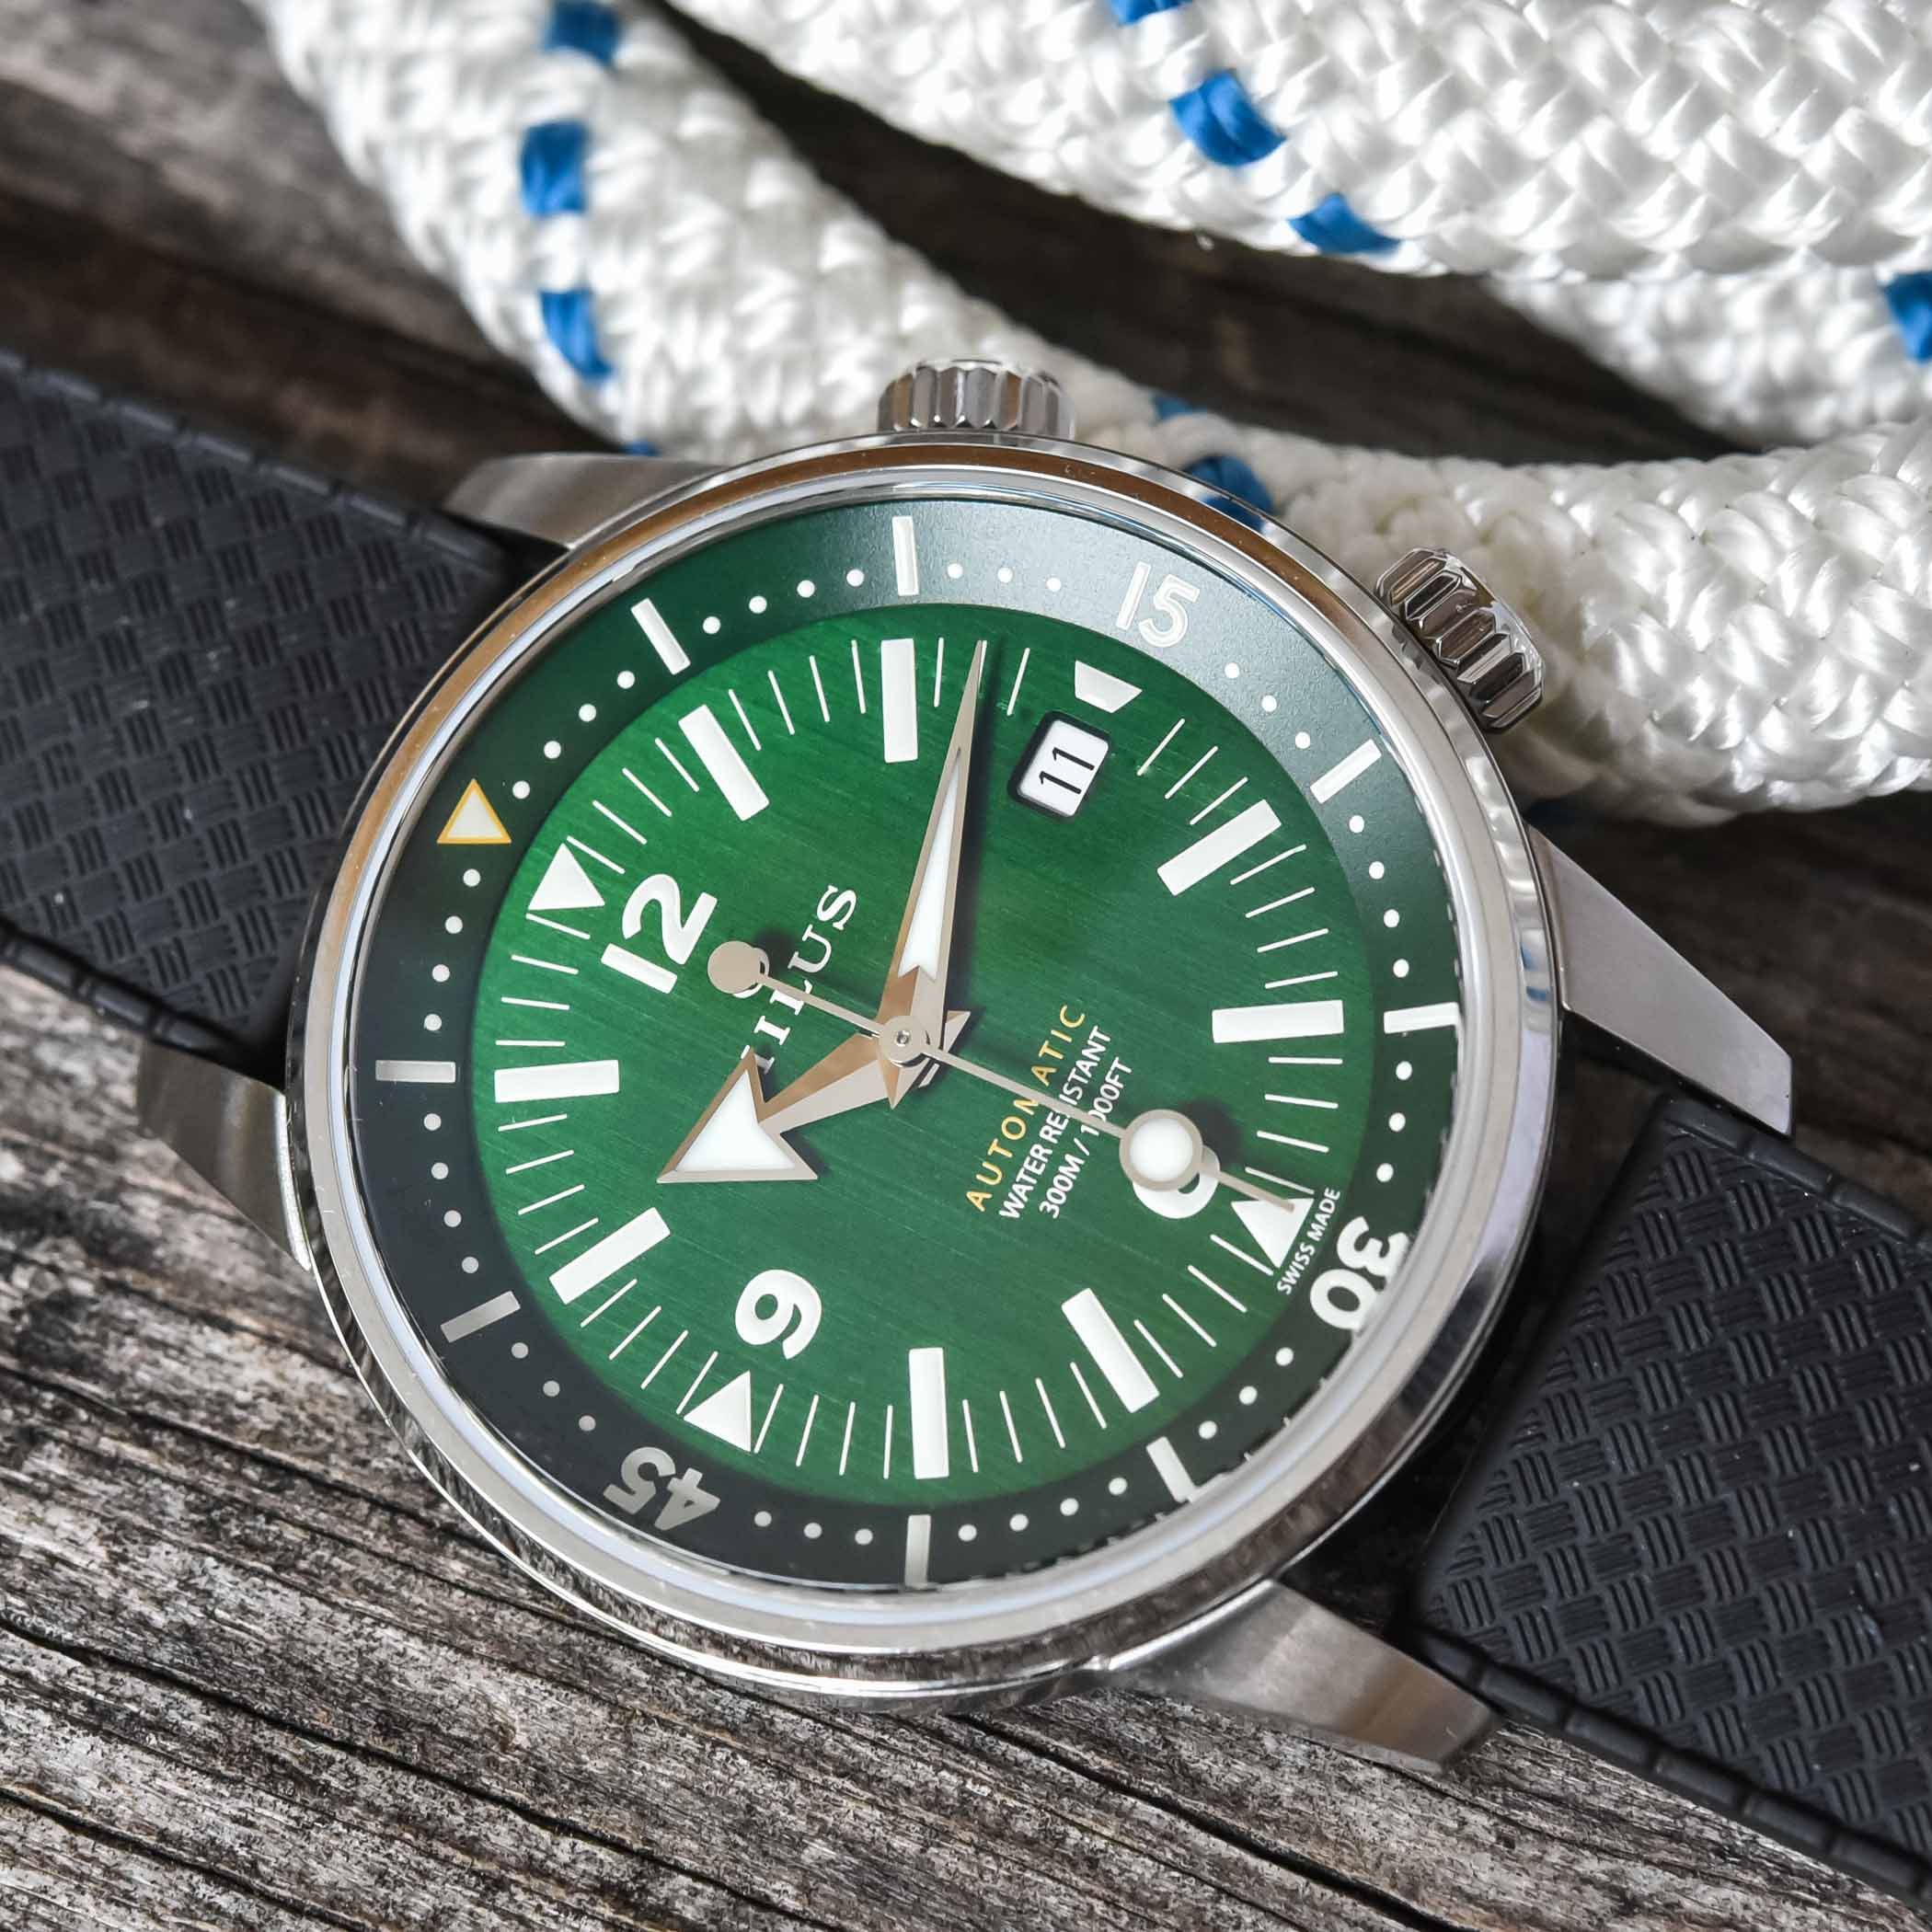 Milus Archimedes Wild Green compressor dive watch